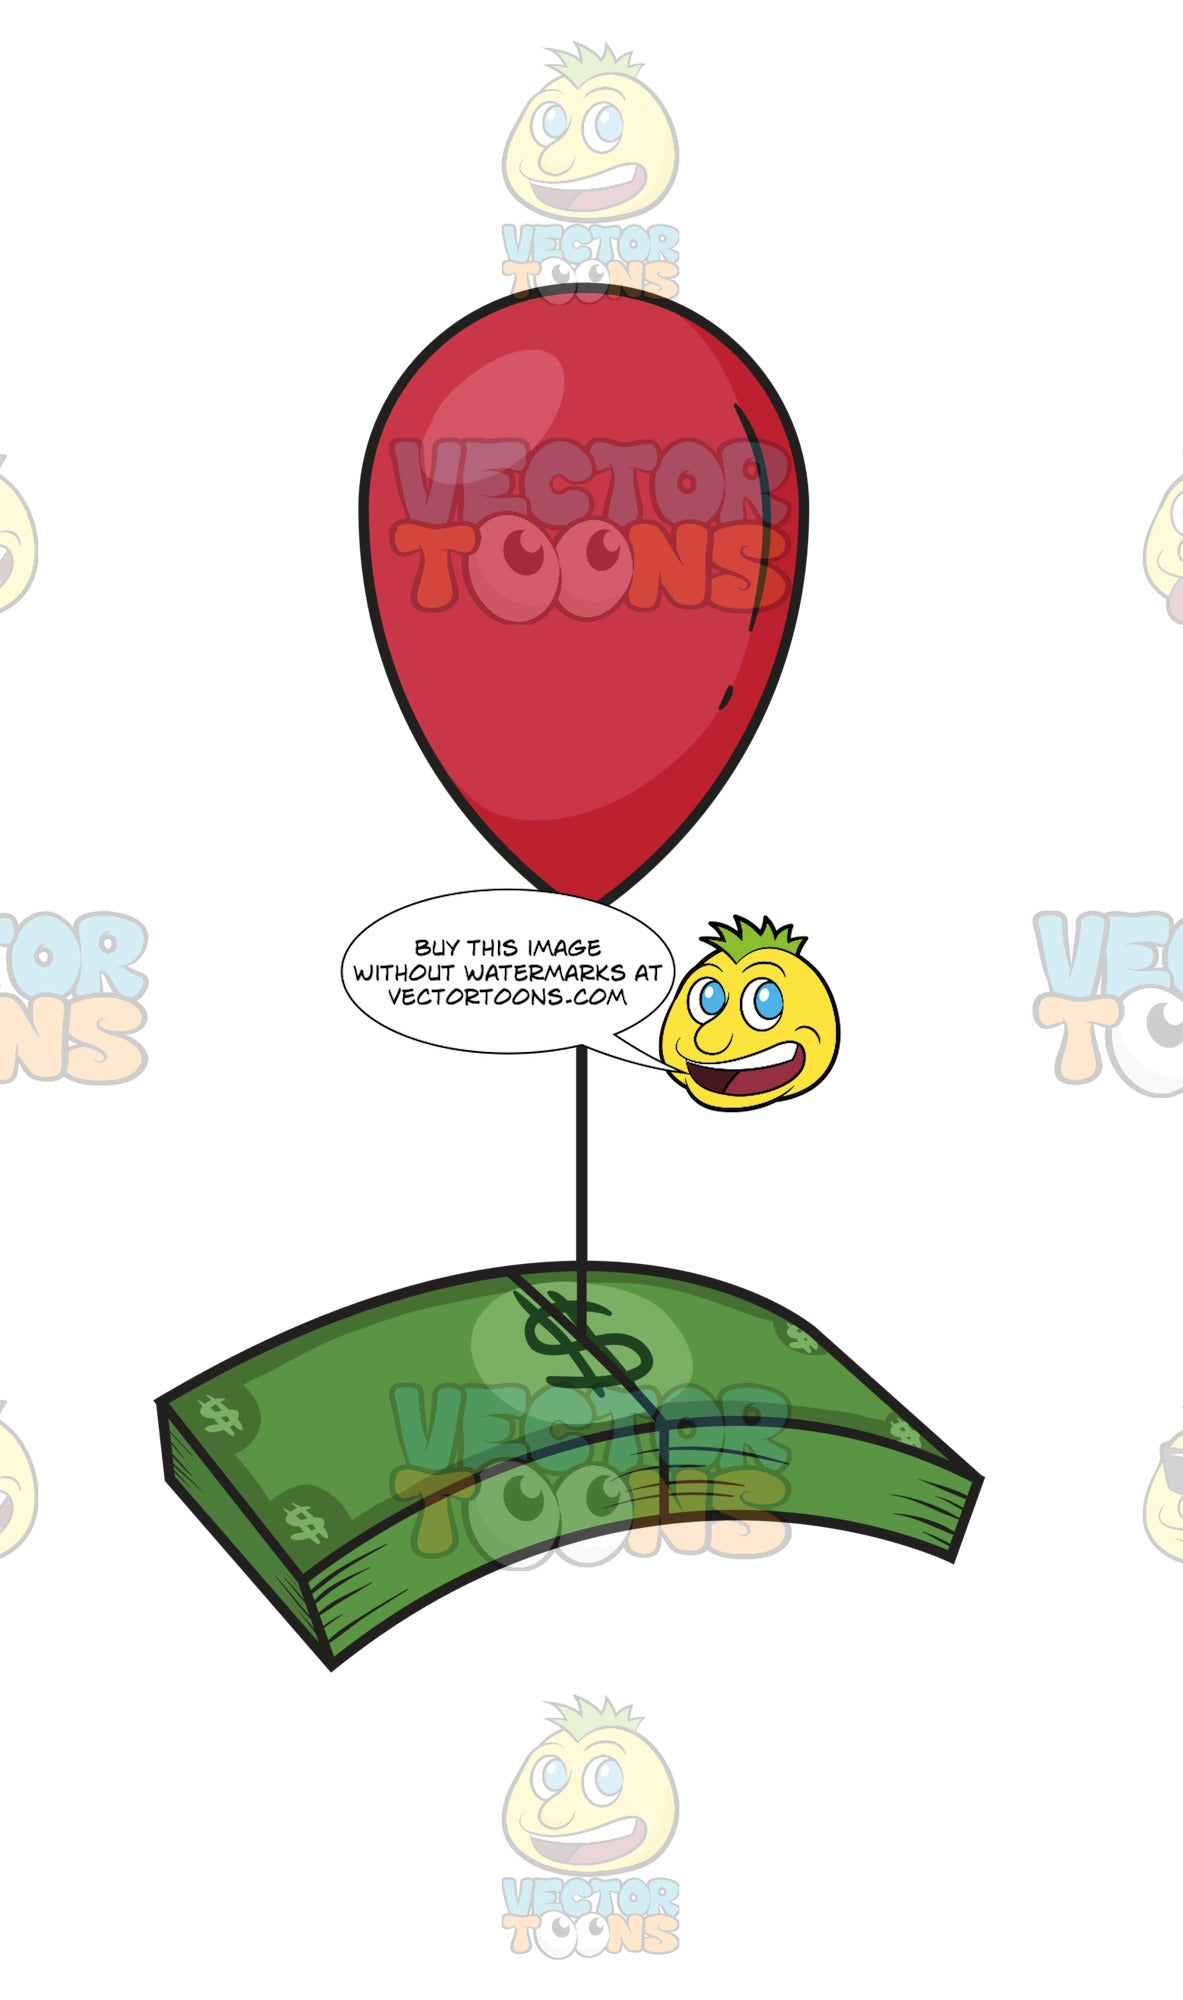 Red Balloon Floating With A Stack Of Green Dollar Bills Tied To The End Of Its String